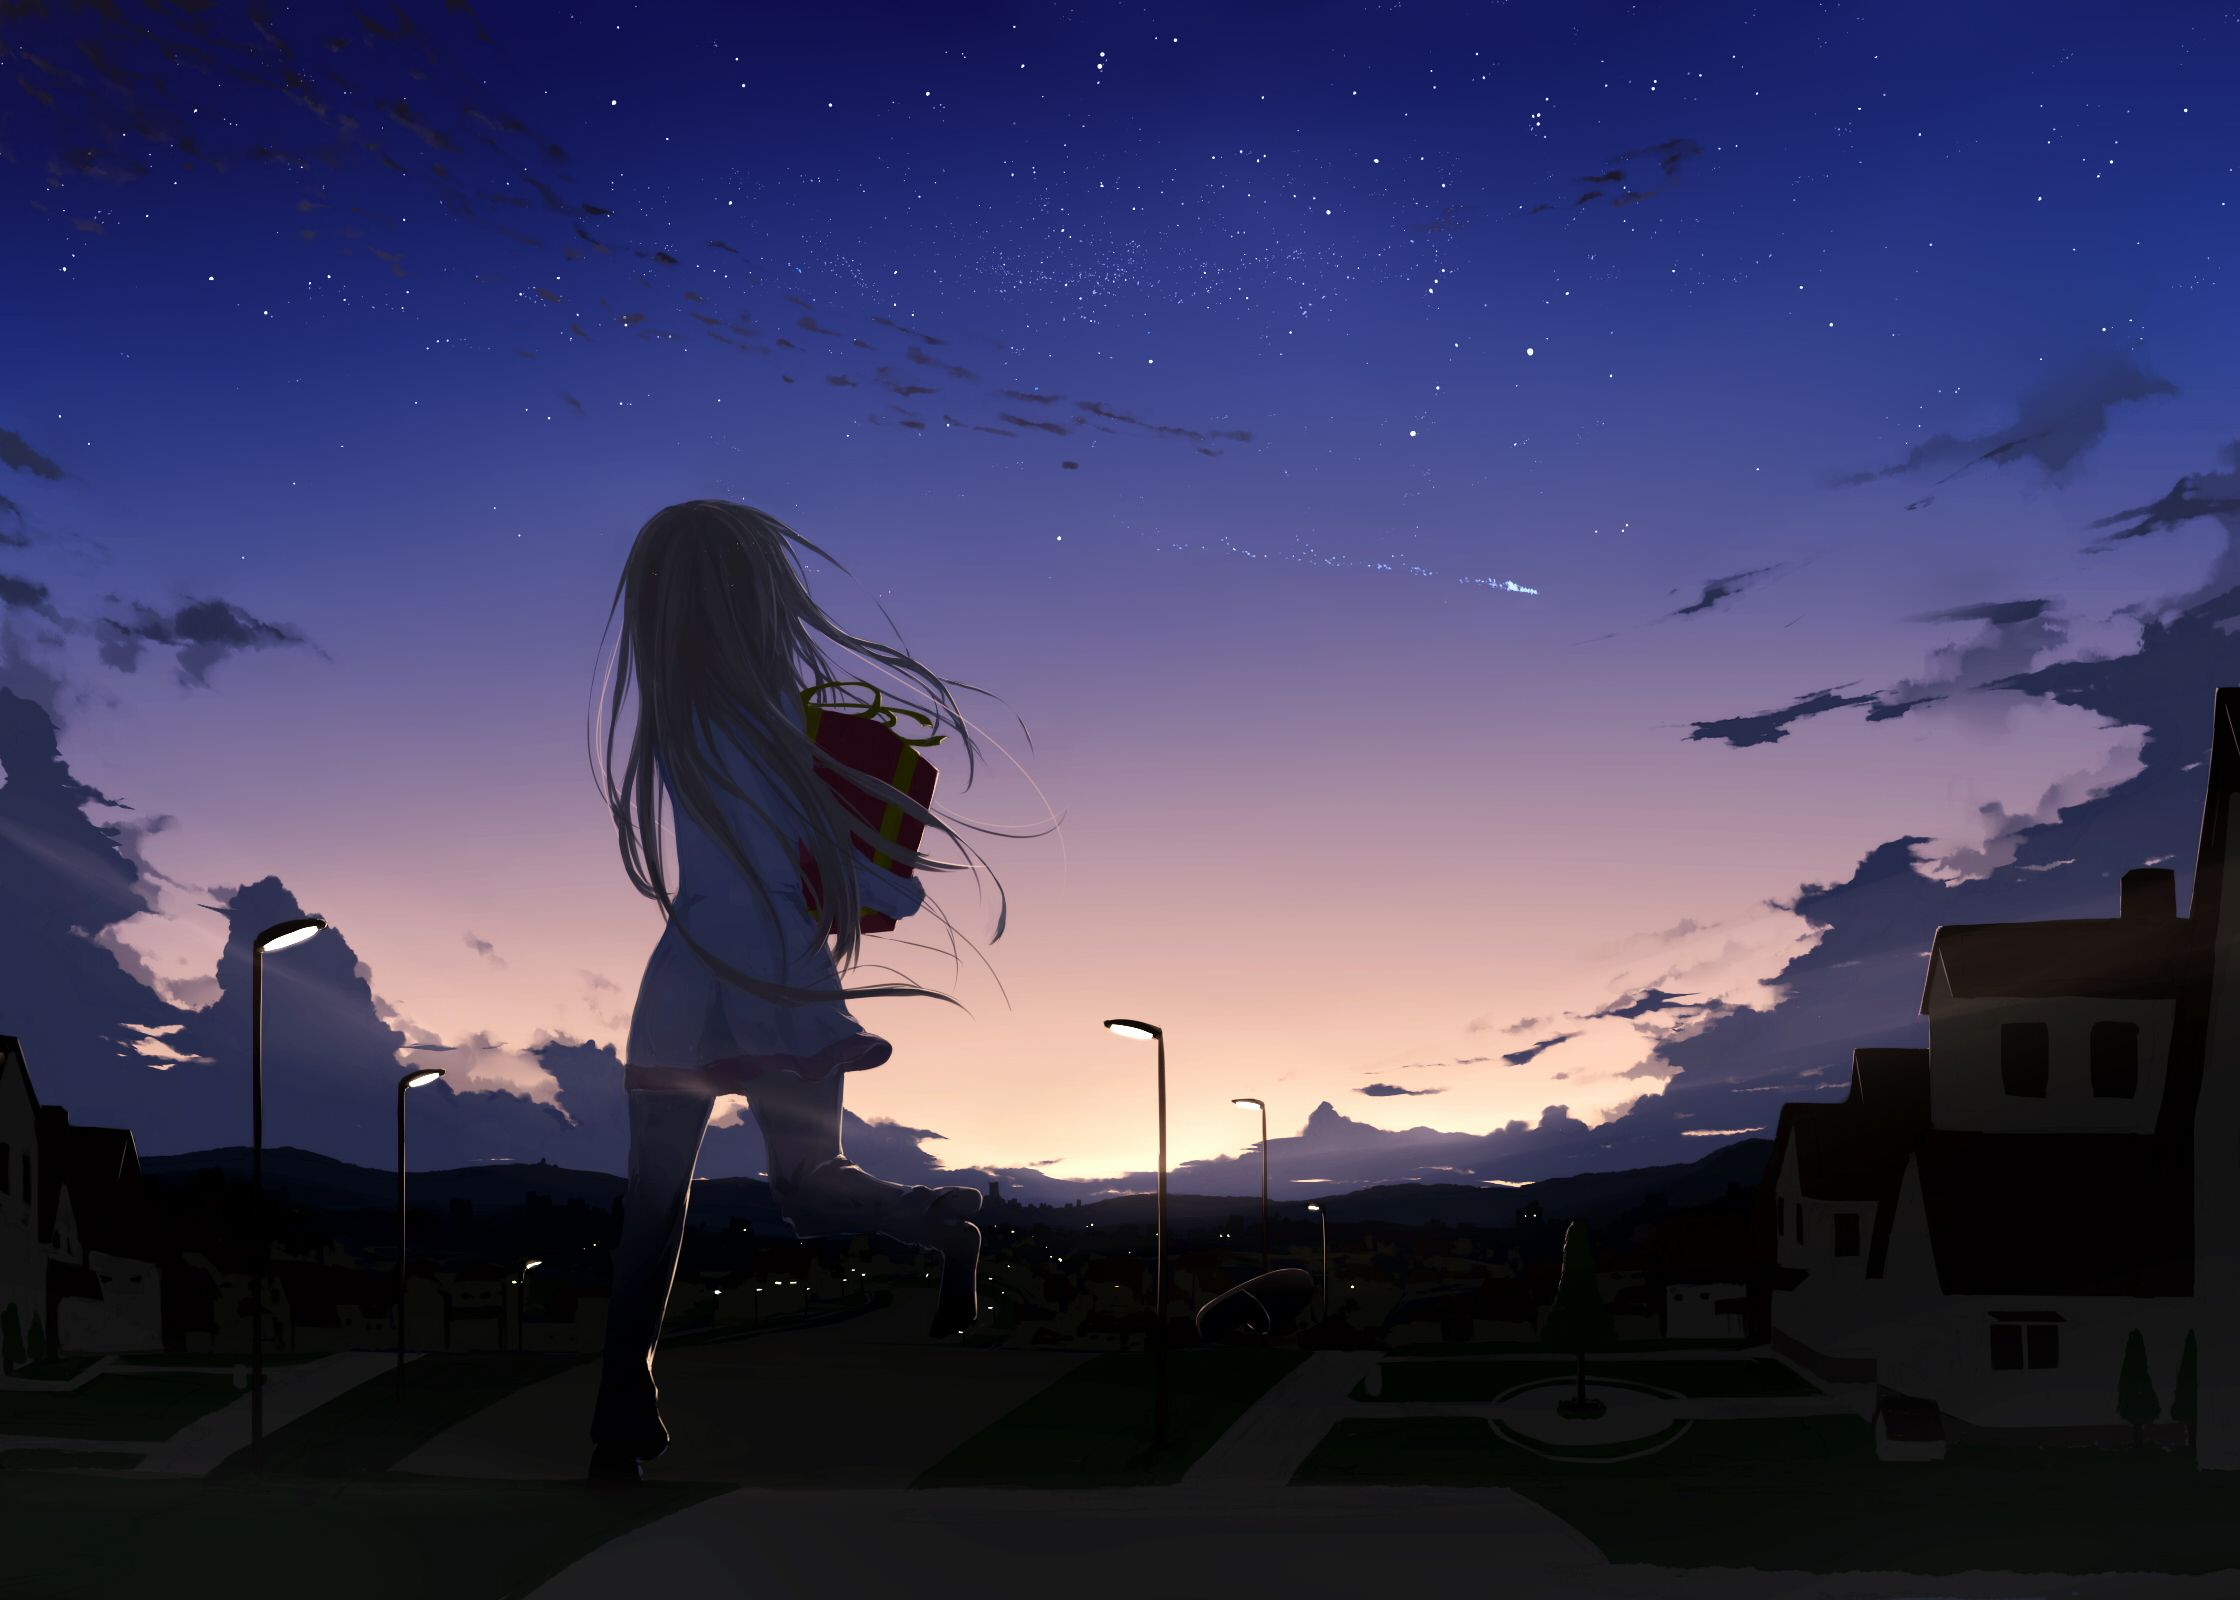 anime sky wallpapers high resolution fot background